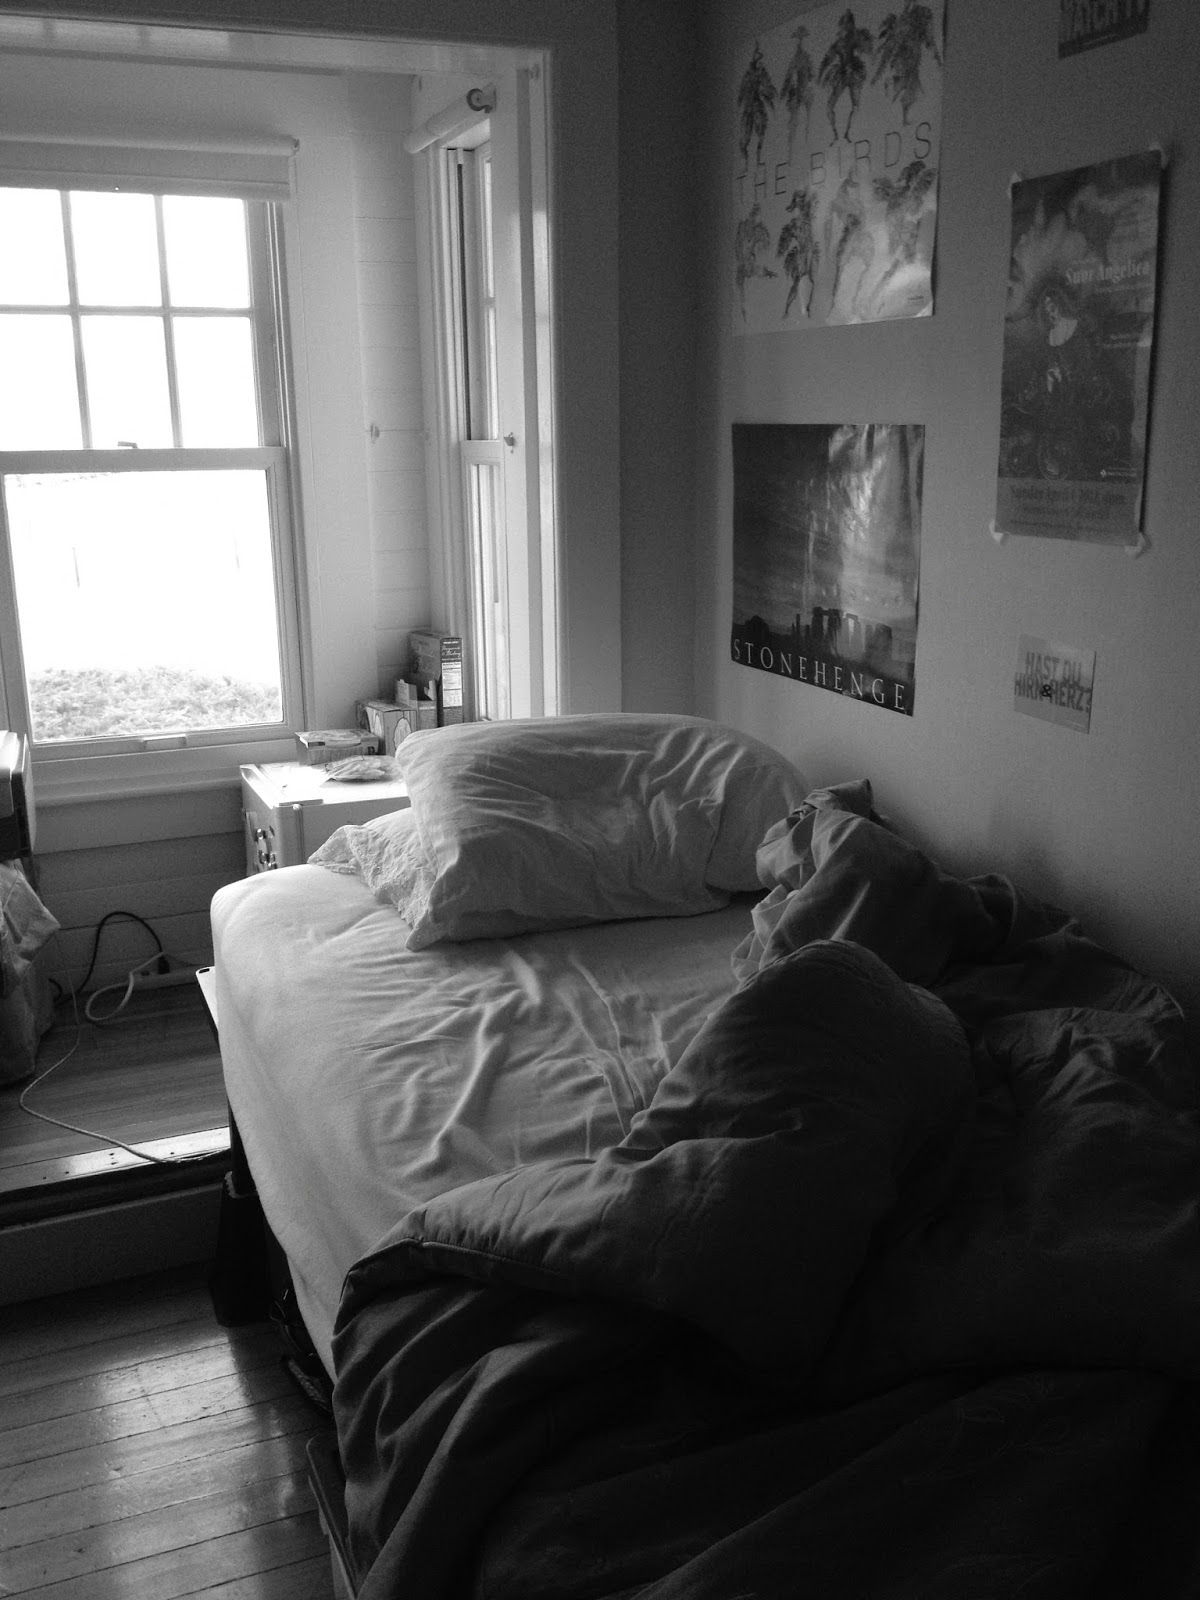 My unmade bed in black and white